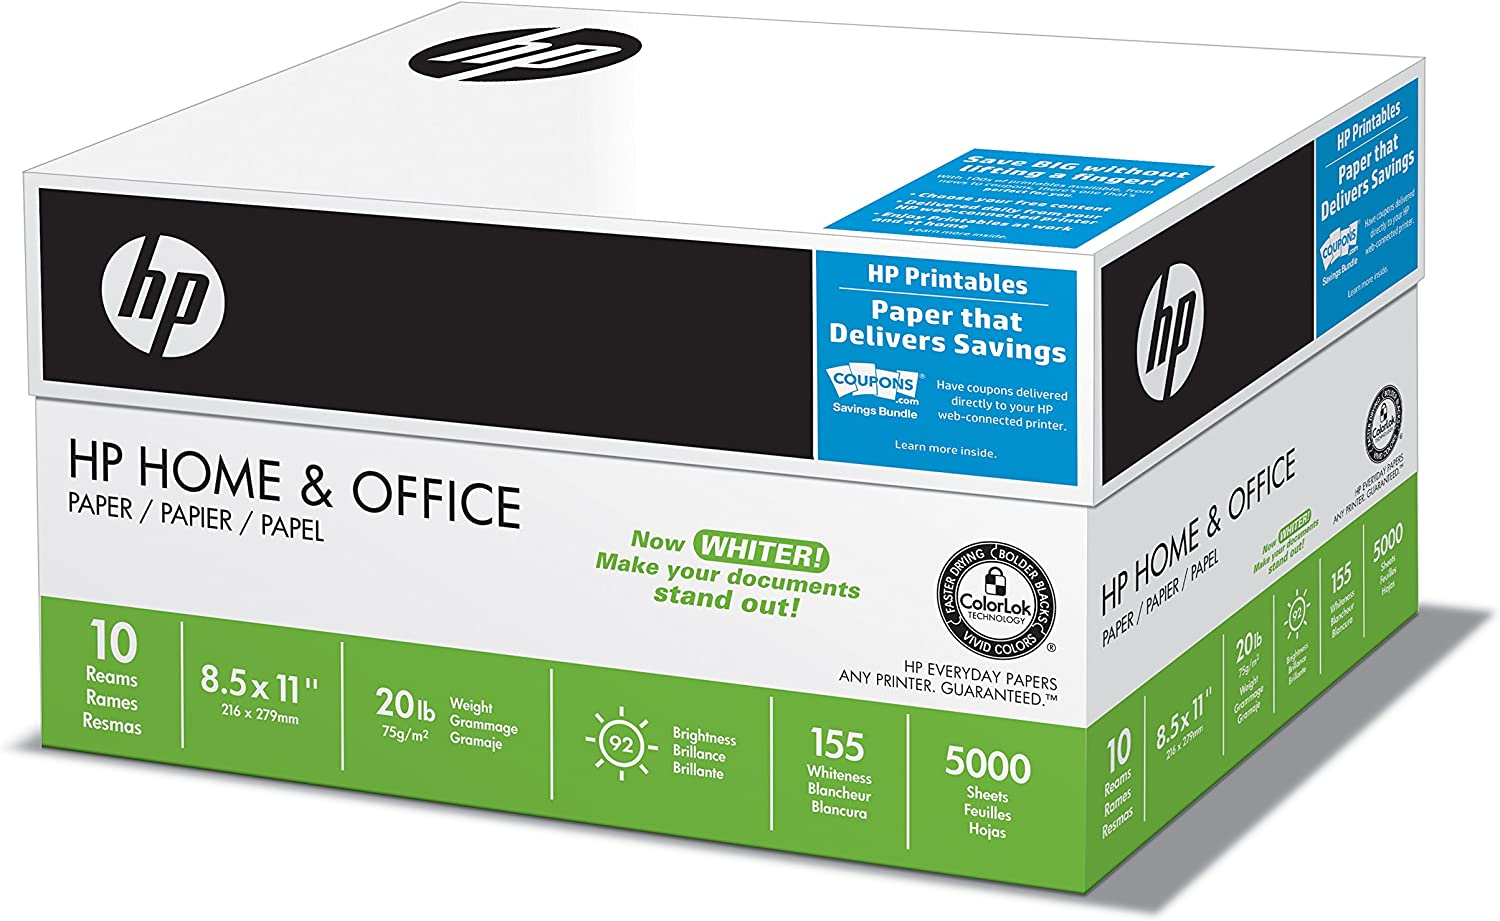 HP Printer Paper 8.5x11 Home & Office 20 lb 10 Ream Case 5000 Sheets 92 Bright Made in USA FSC Certified Copy Paper HP Compatible 200510C